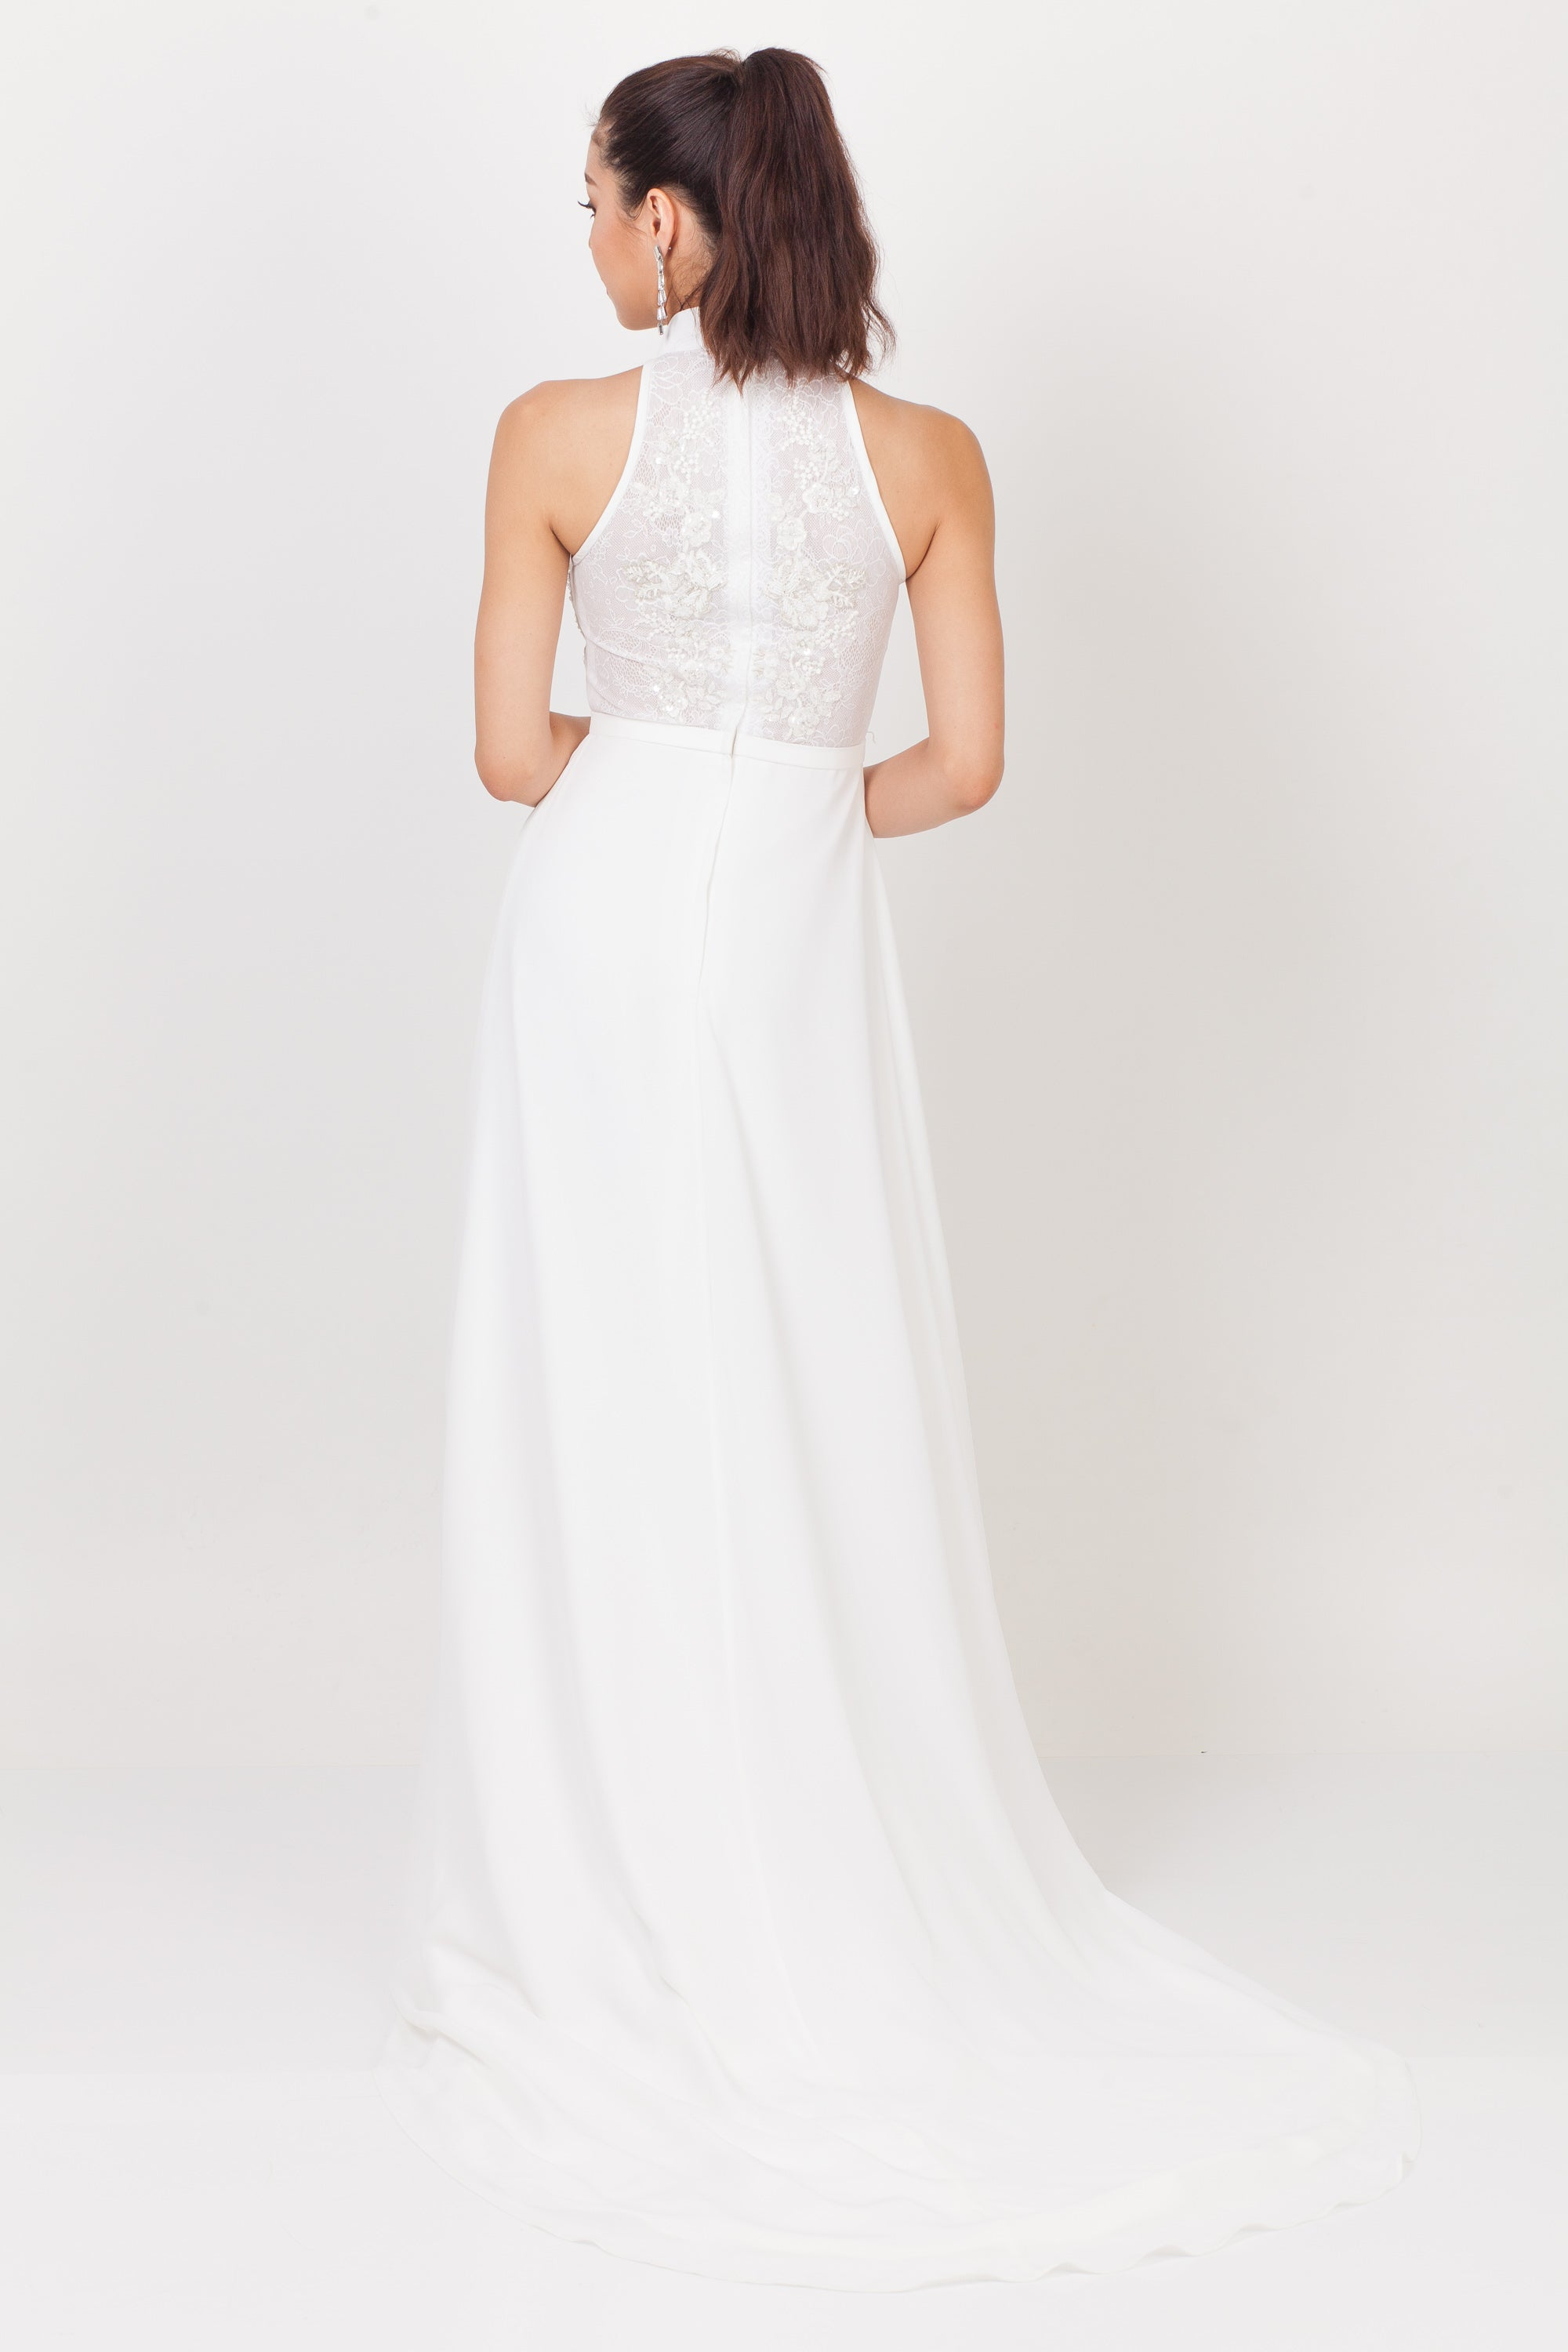 Qipology Hand Embroidered Bridal Qipao Gown